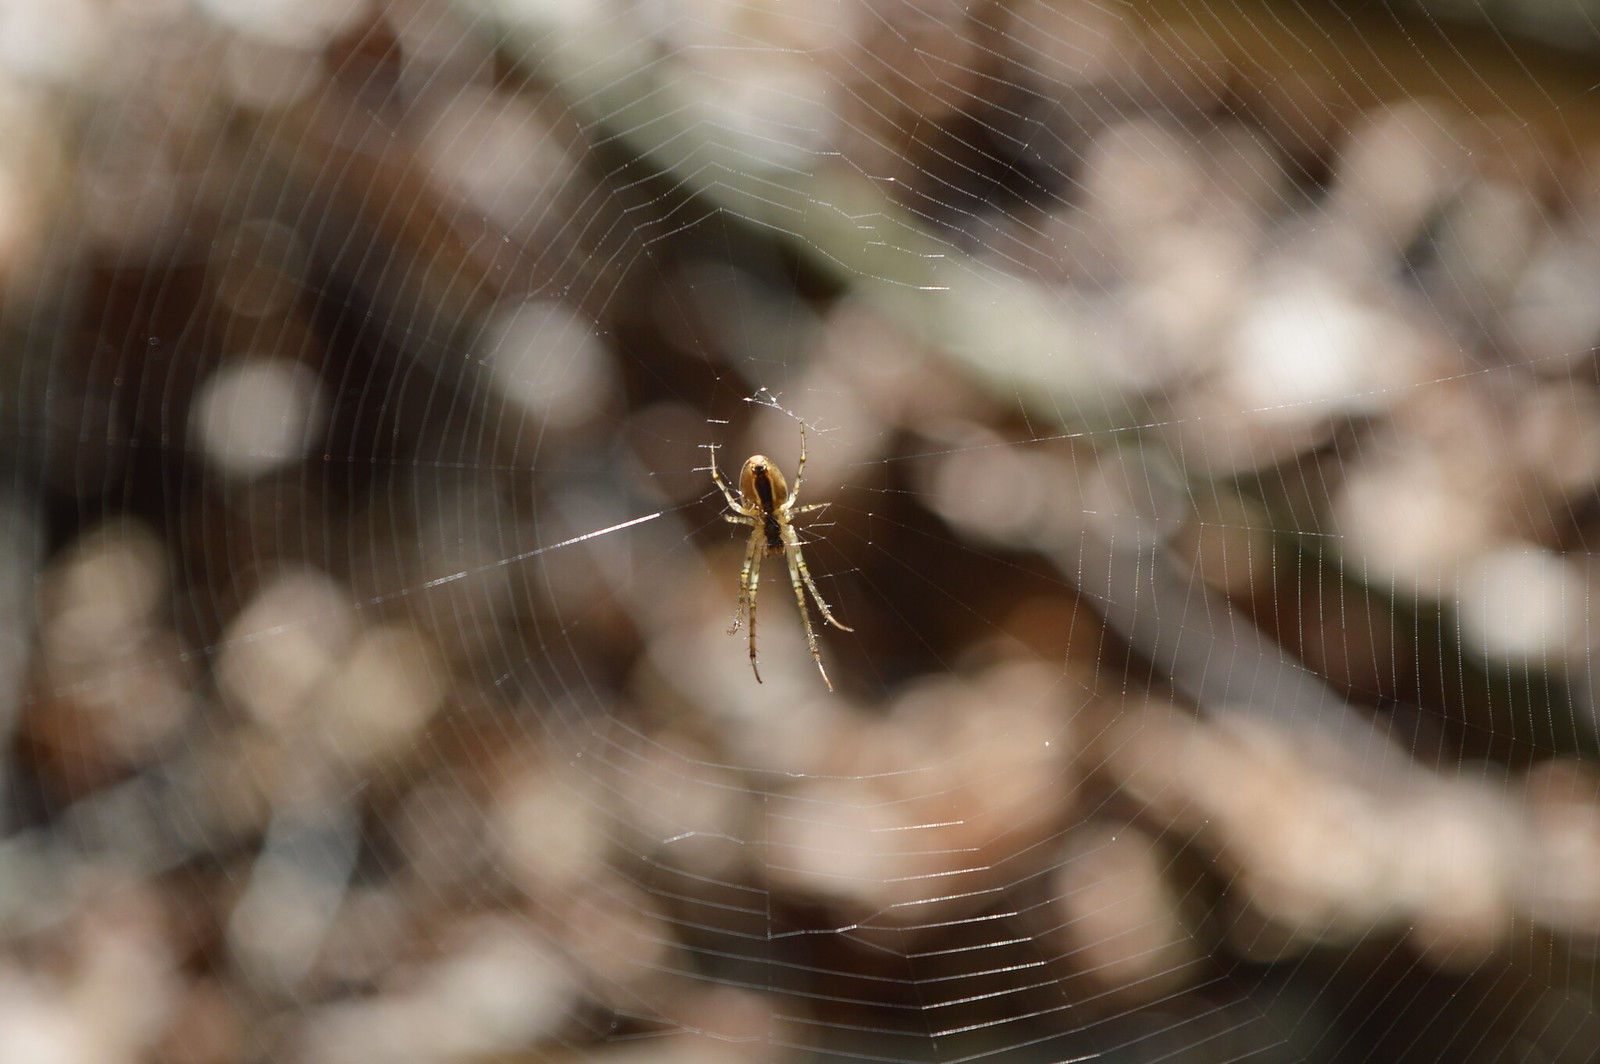 Spider in its web.